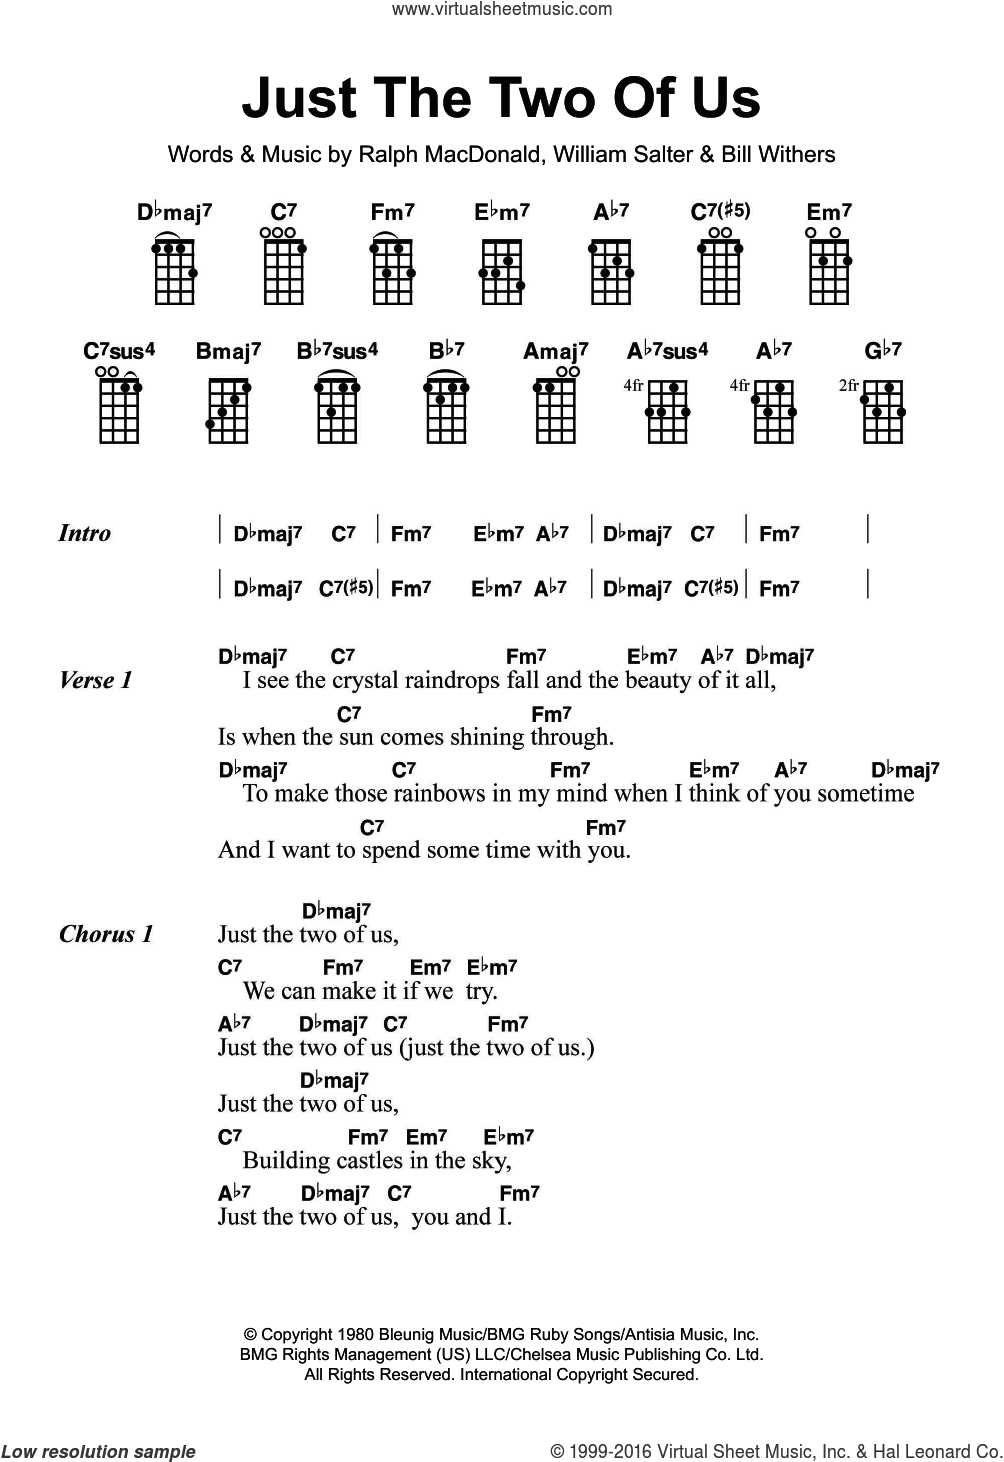 Just The Two Of Us sheet music for ukulele by Bill Withers, Ralph MacDonald and William Salter, intermediate skill level